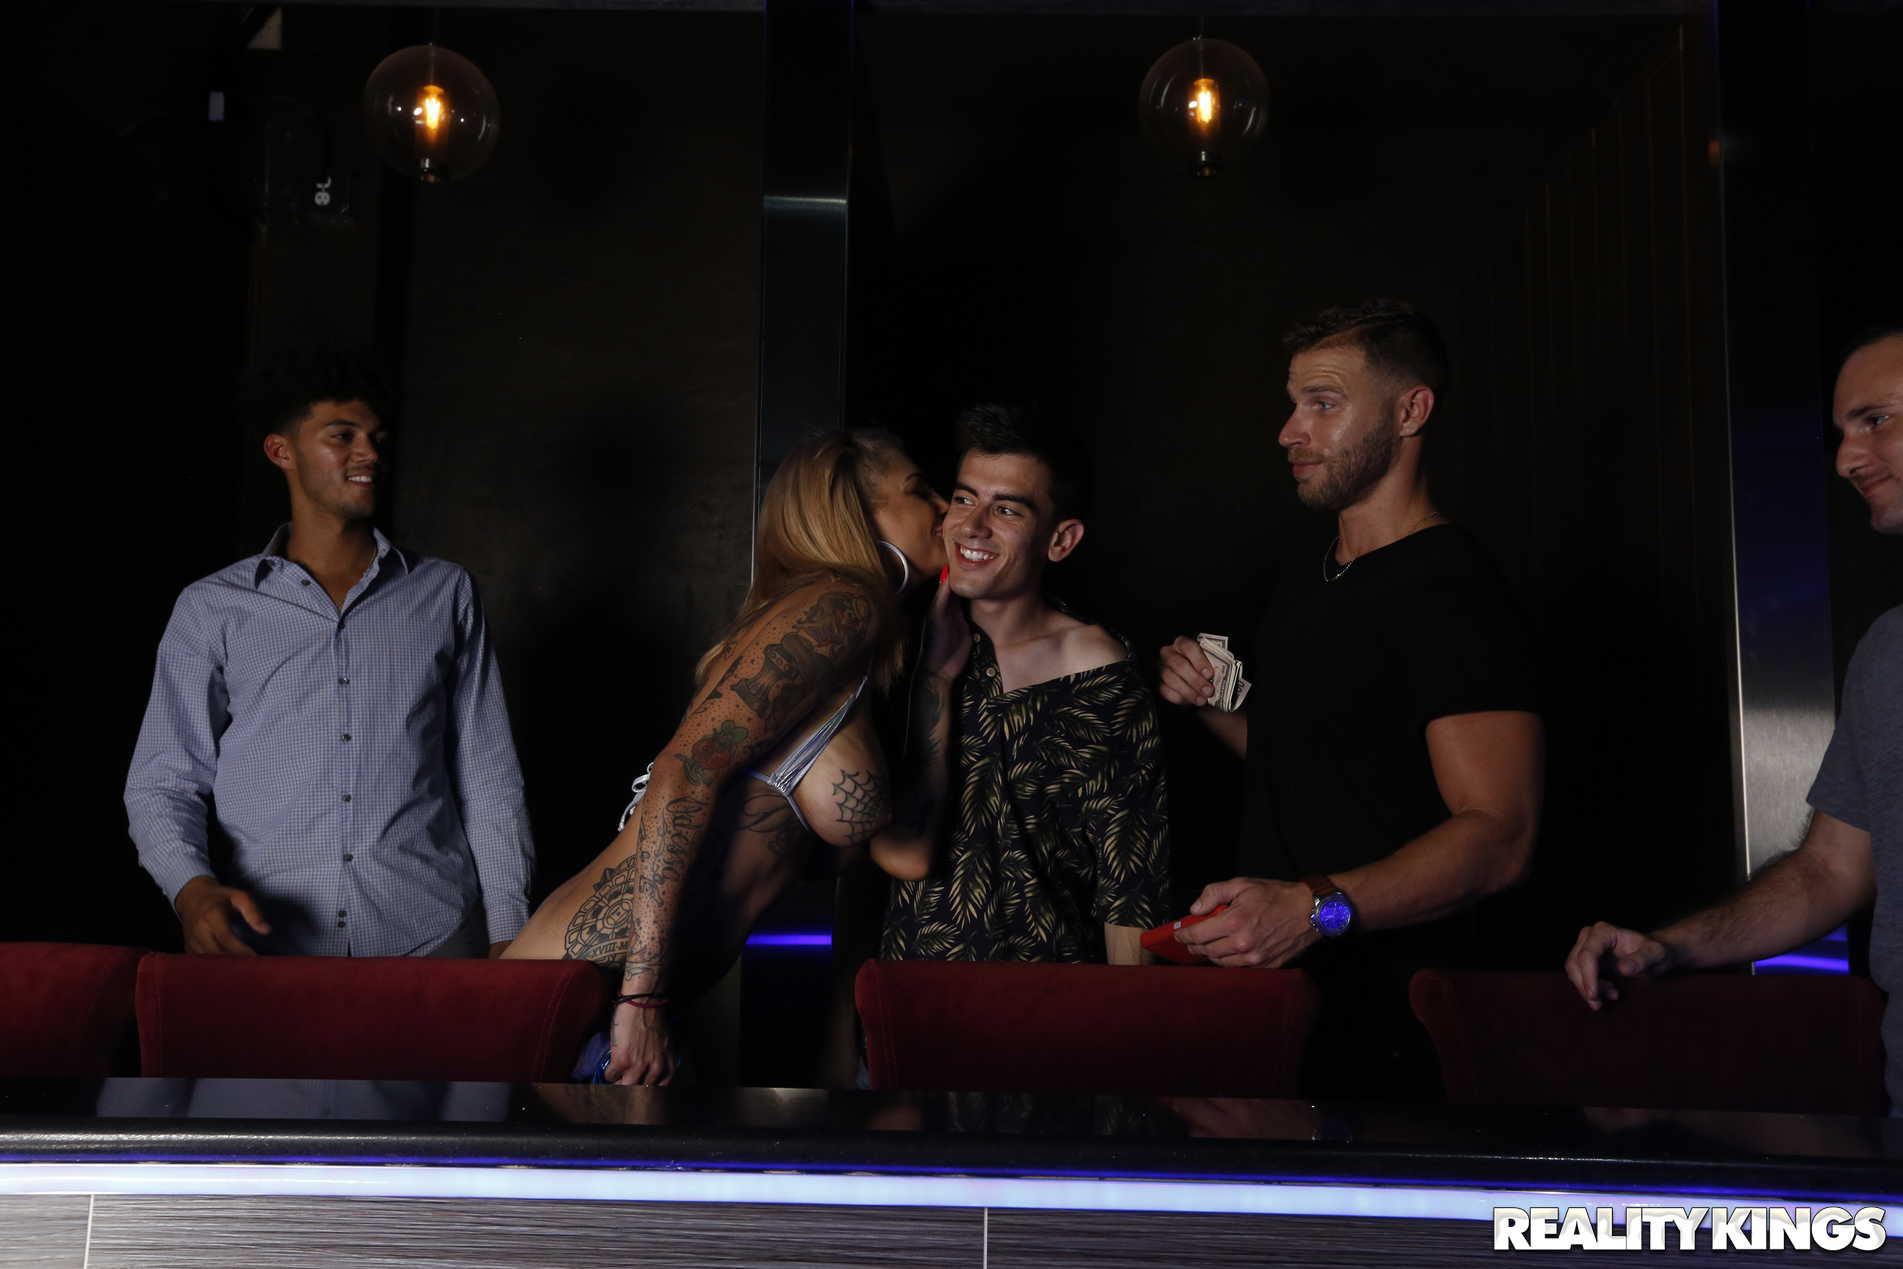 Reality Kings 'Rotten Experience At The Strip Club' starring Bonnie Rotten (Photo 192)